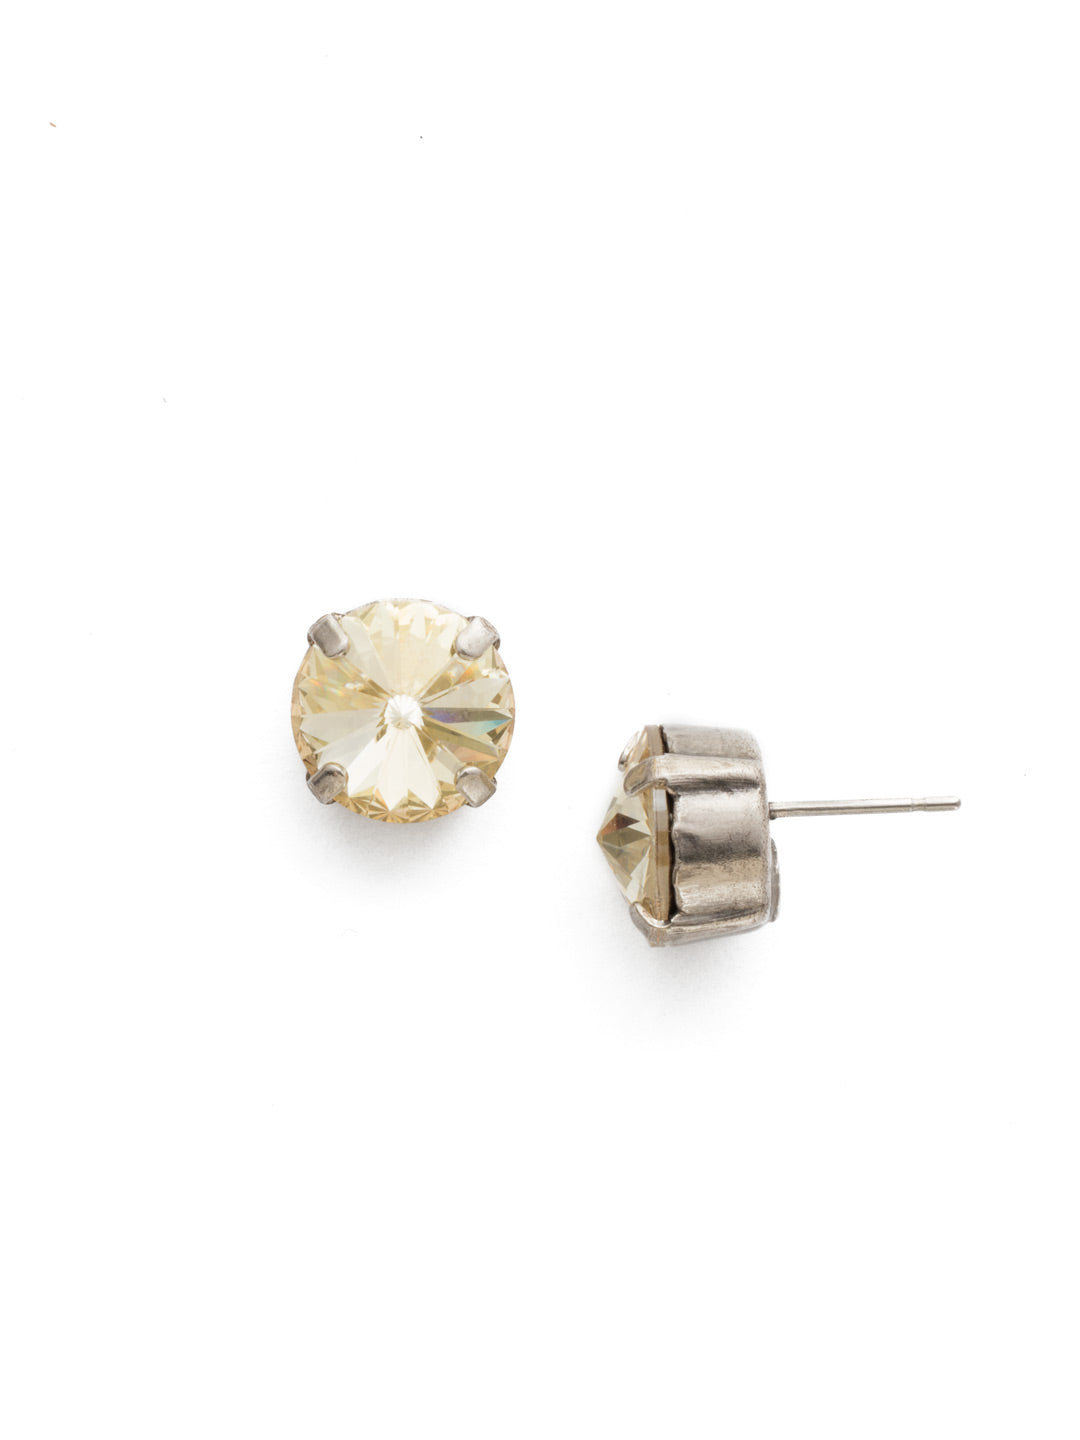 Round Crystal Stud Earring - ECM14ASCCH